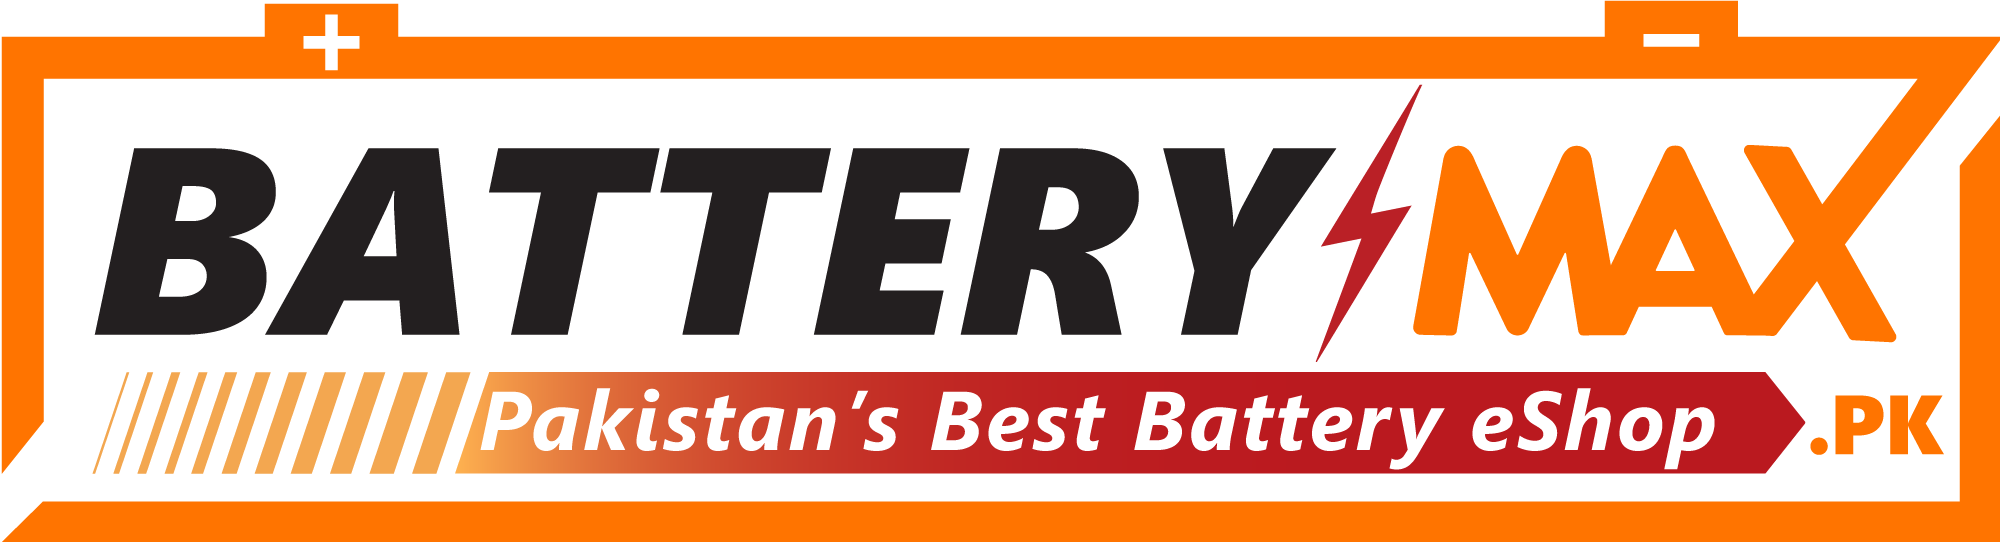 Exclusive Battery Store